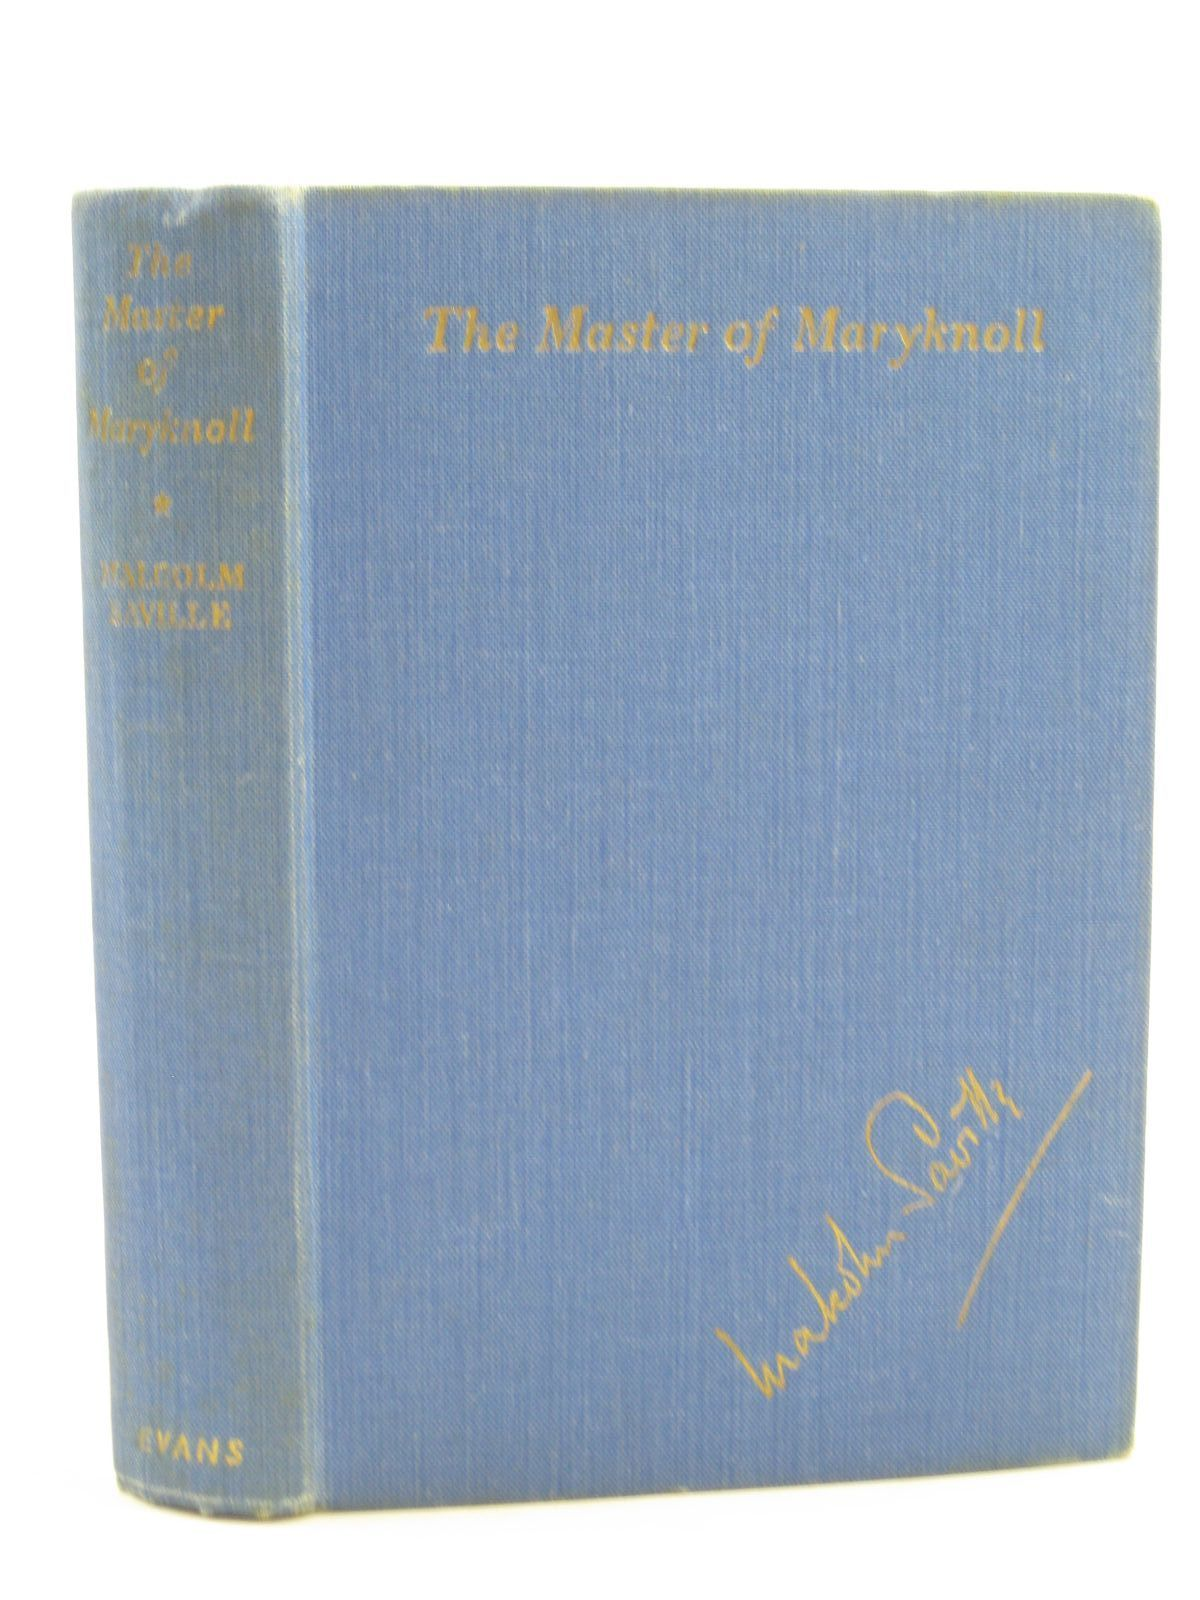 Photo of THE MASTER OF MARYKNOLL written by Saville, Malcolm illustrated by Bush, Alice published by Evans Brothers Limited (STOCK CODE: 1406838)  for sale by Stella & Rose's Books